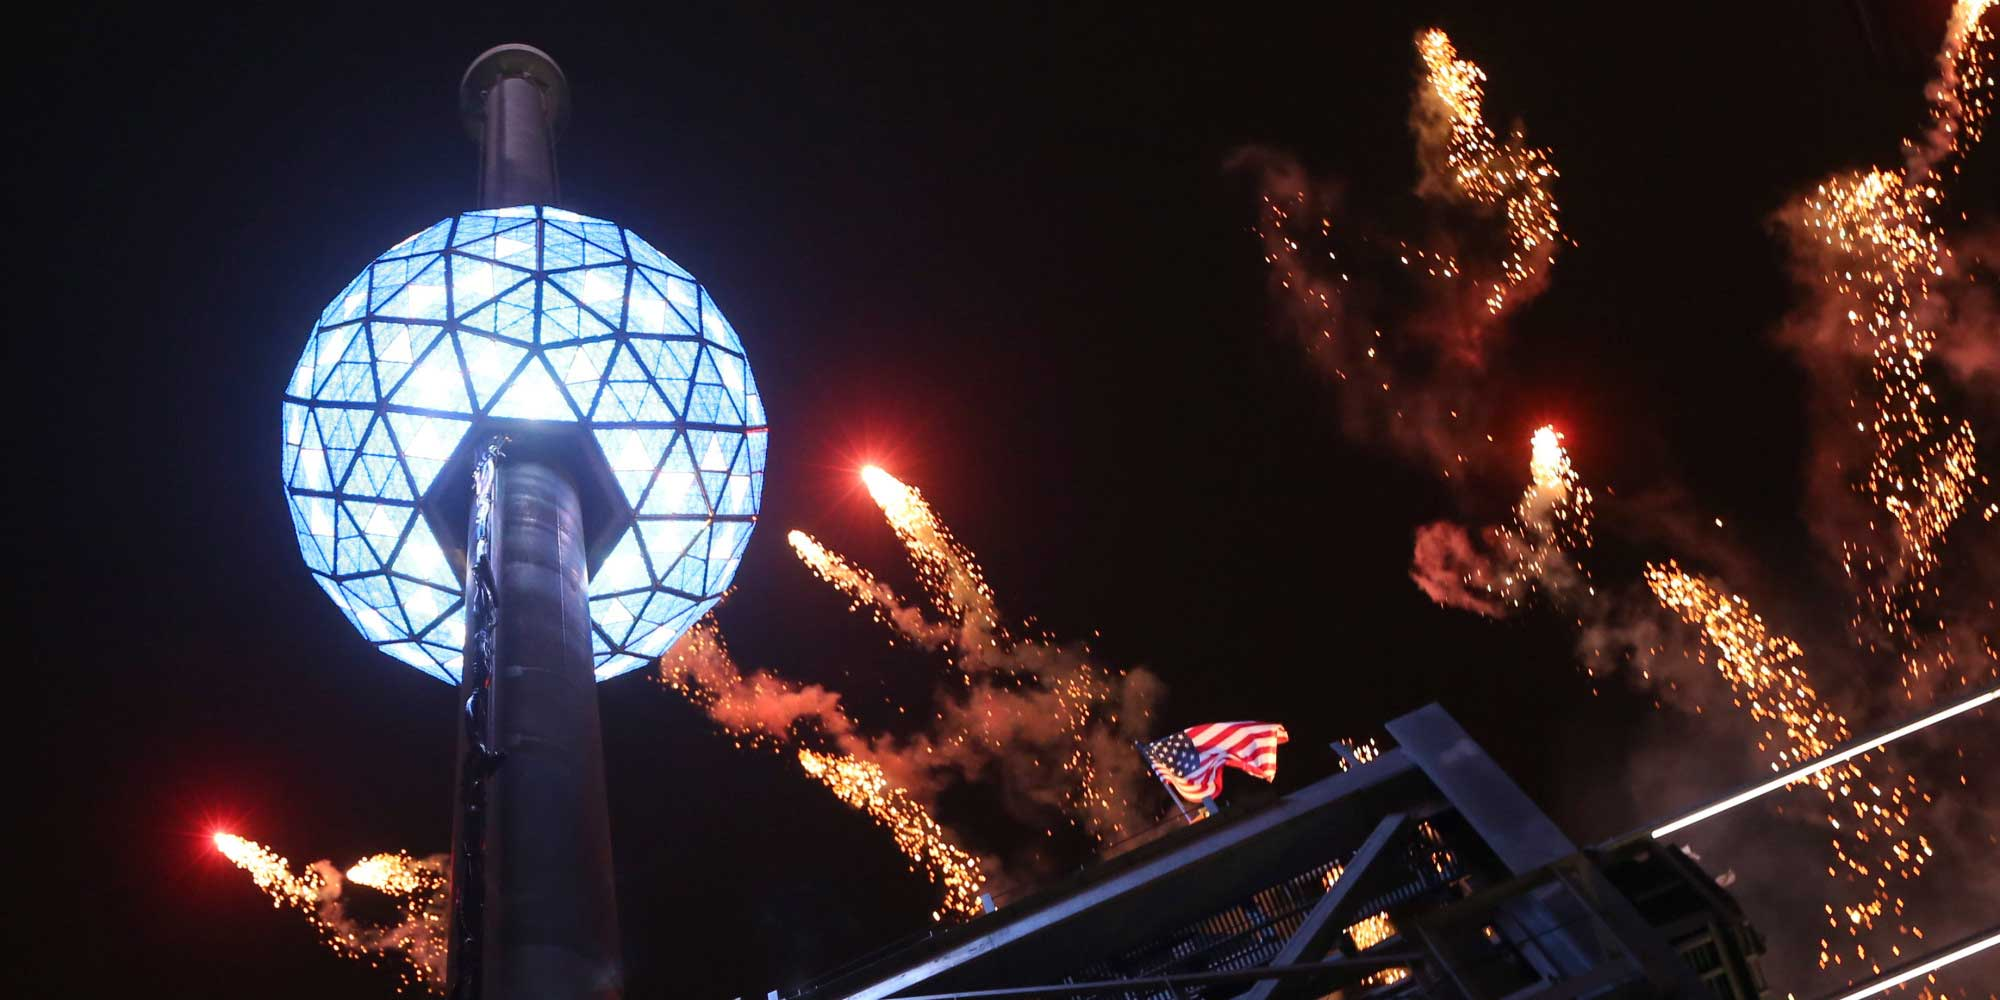 The Ball Drop/ Crédito foto: http://www.huffingtonpost.com/2013/12/23/times-square-ball-app_n_4491809.html